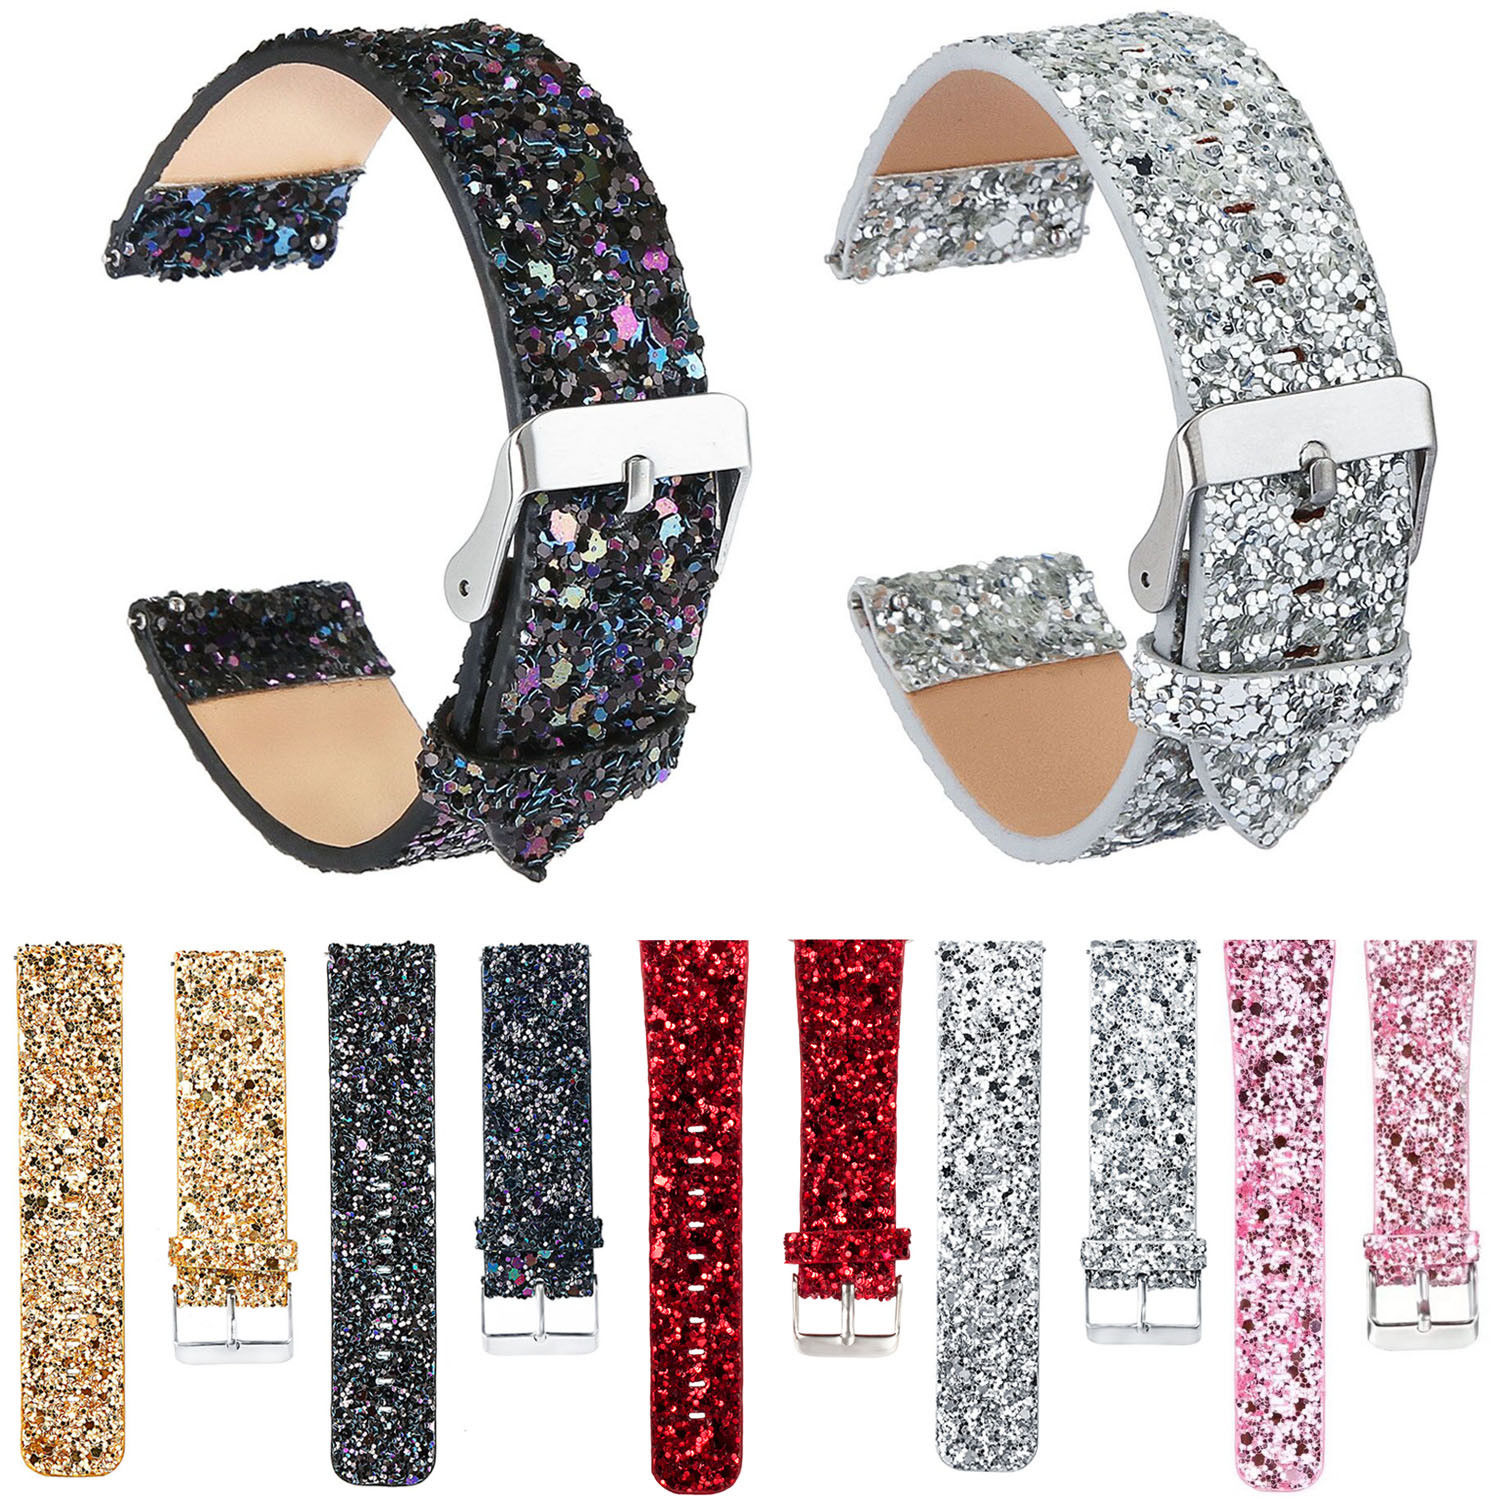 22mm Glitter Christmas Leather Band For Samsung Gear S3 Frontier Strap Shiny Bling Watch Bracelet For Gear S3 Classic Wristband